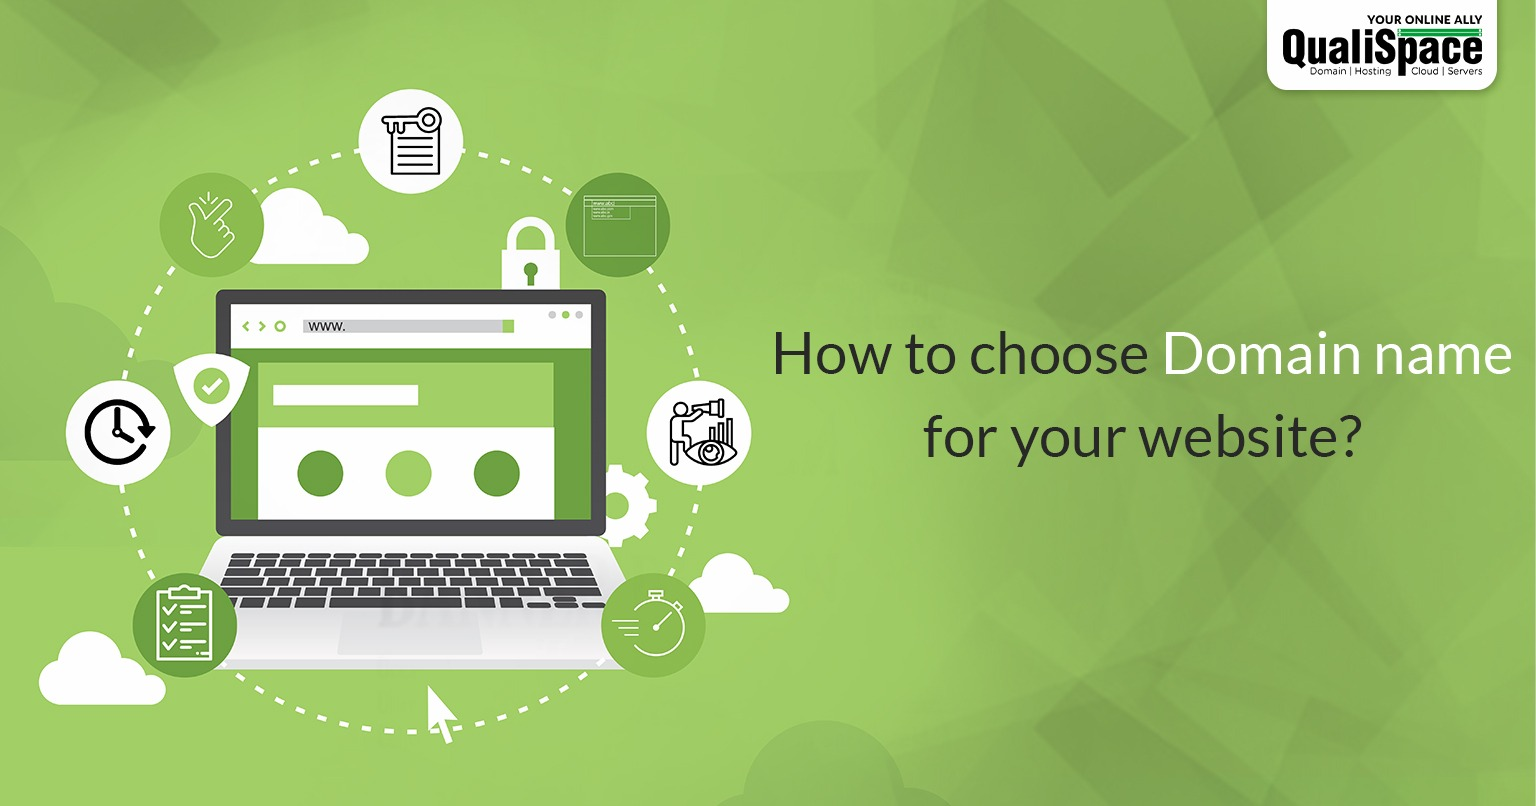 How to choose a Domain Name for your website: A Checklist